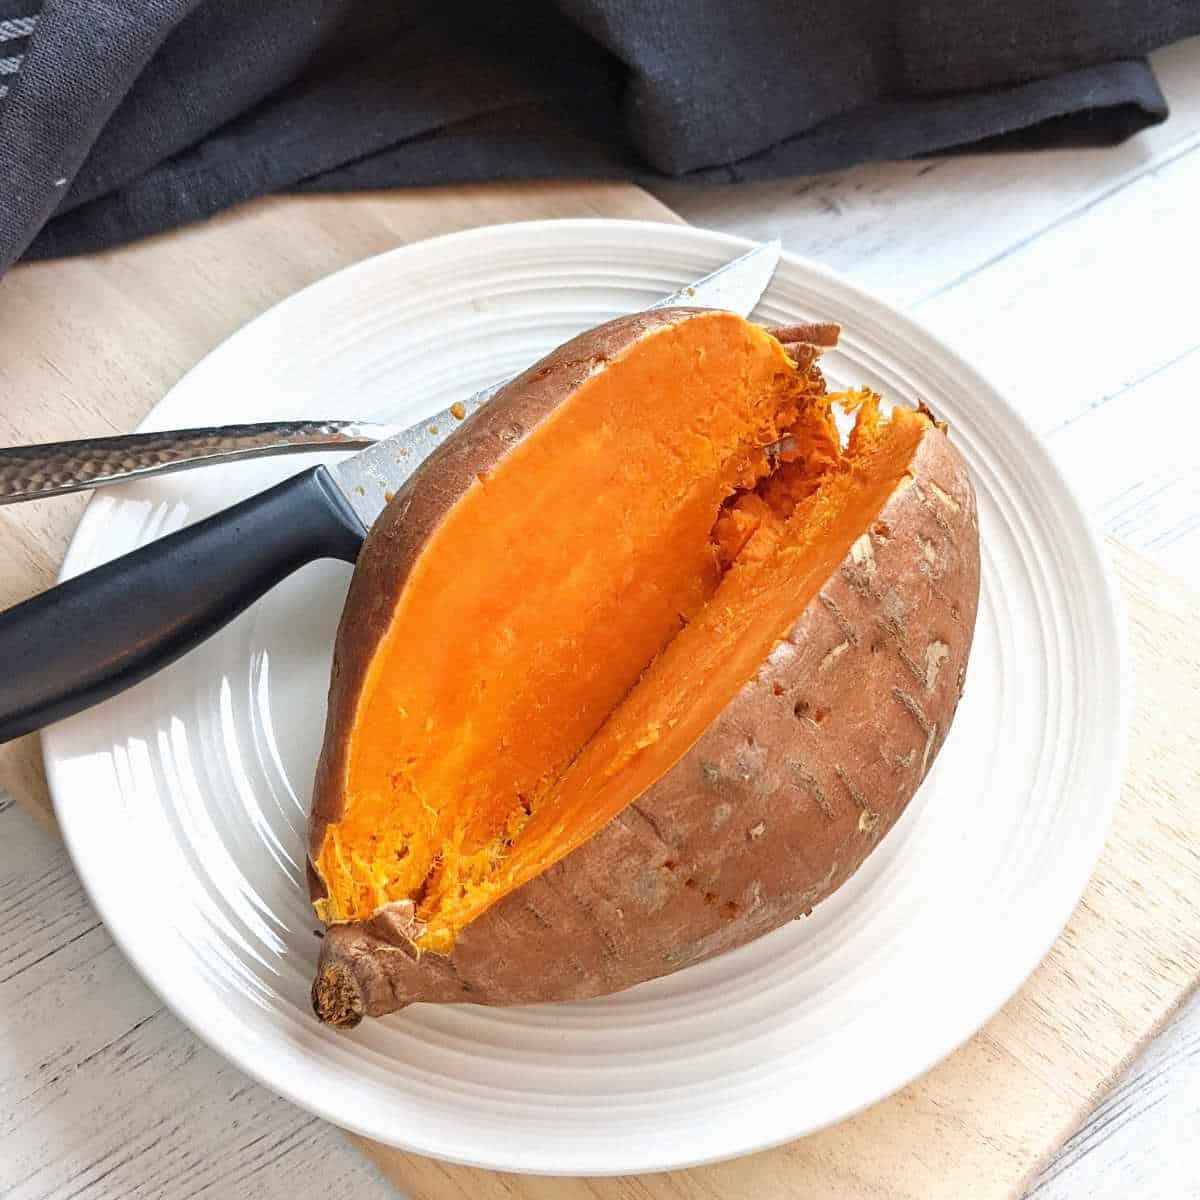 A sliced open cooked sweet potato on a plate with a fork and knife.